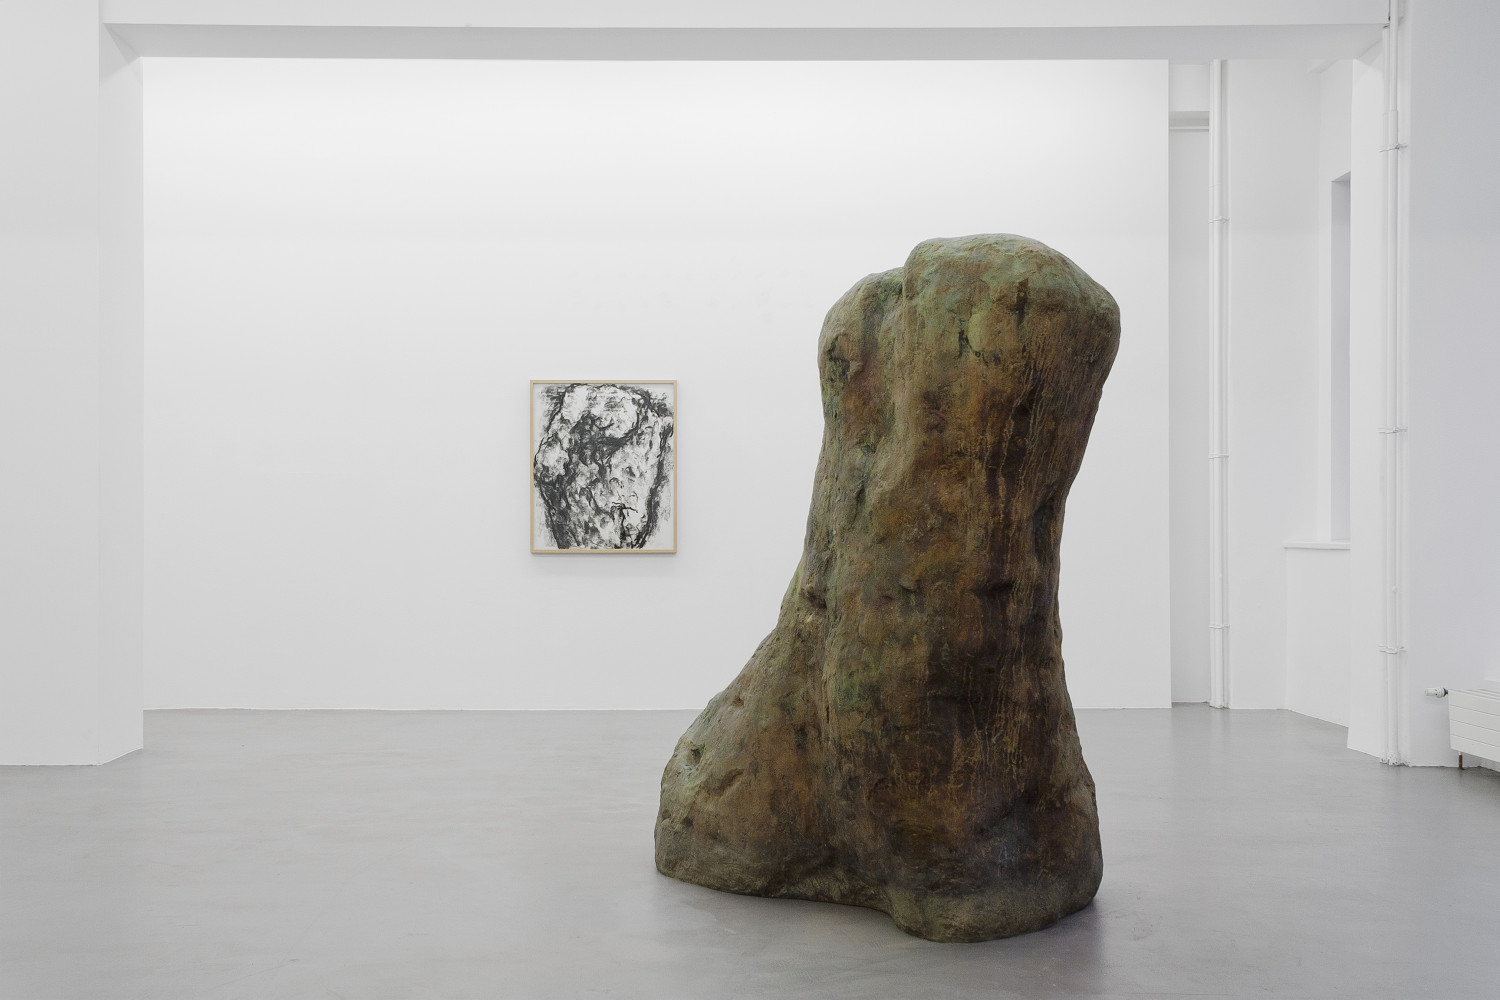 William Tucker, Installation view, Buchmann Galerie, 2015–2016